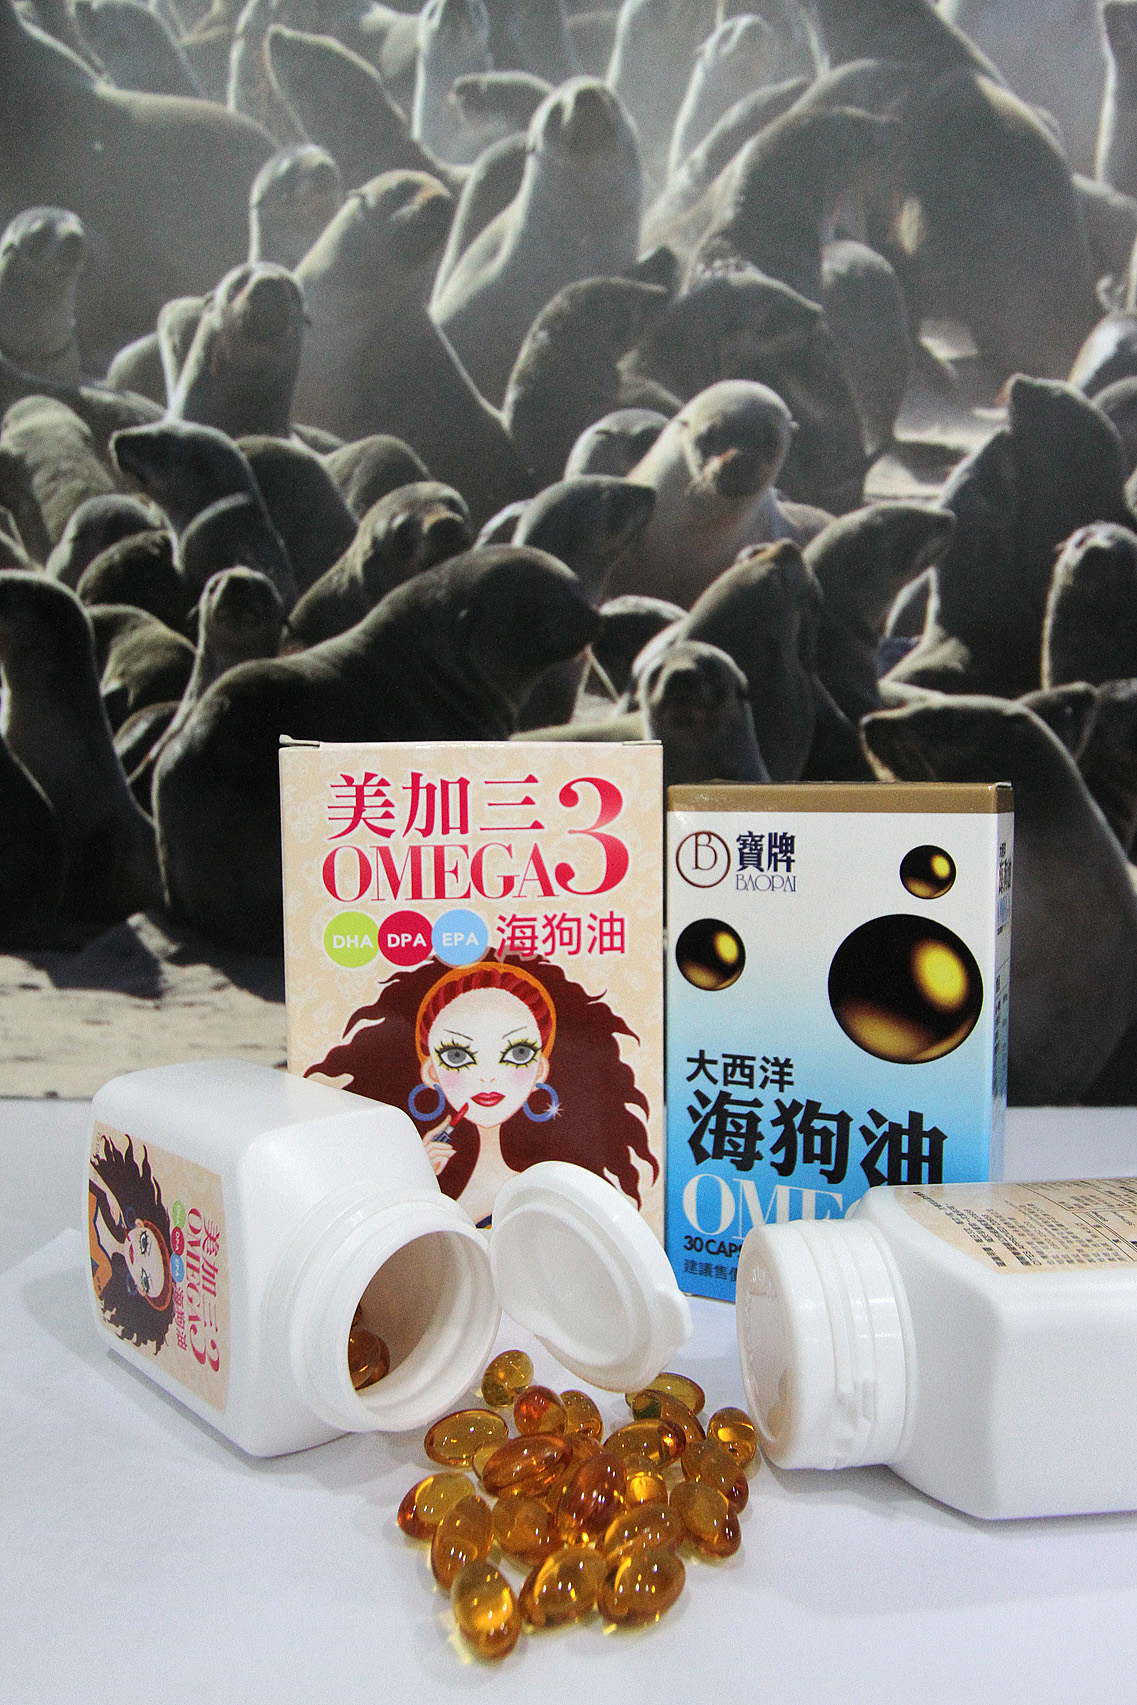 Seal and fur seal products sold in Taiwan are displayed during a news conference held yesterday to urge the government to pay attention. Activists sai...